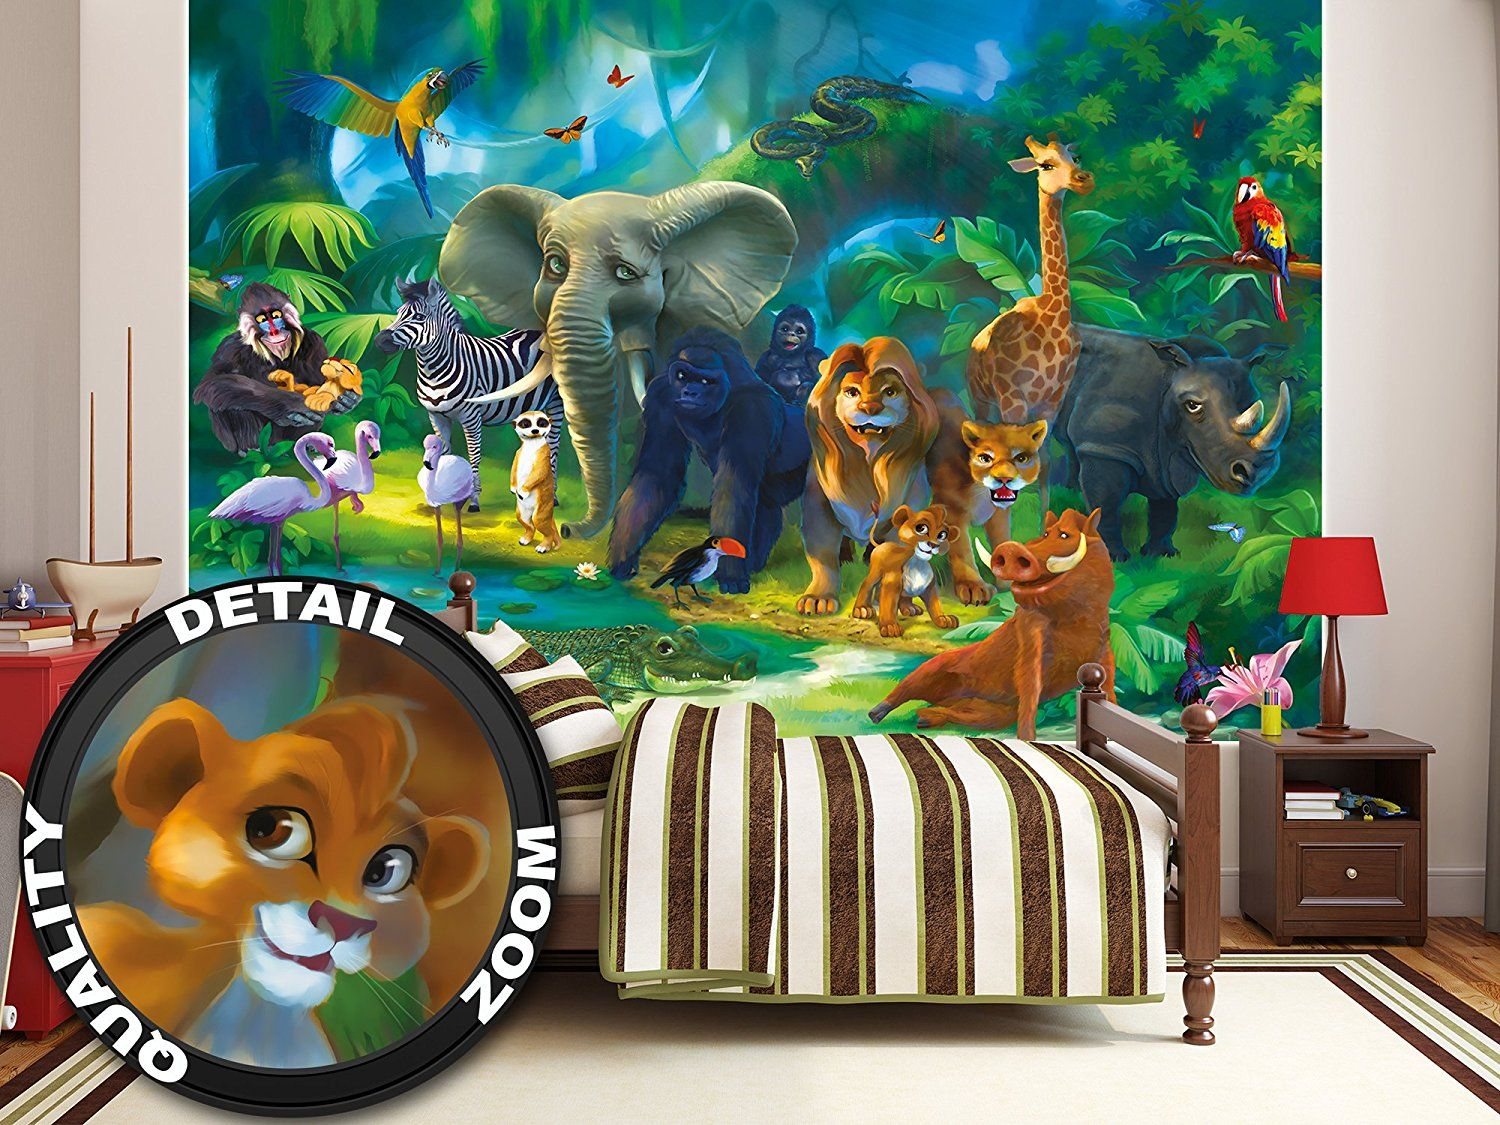 FRESQUE MURALE ANIMAUX Sauvages Dans Nature | Stickers Chambre Bebe Garcon  Jungle